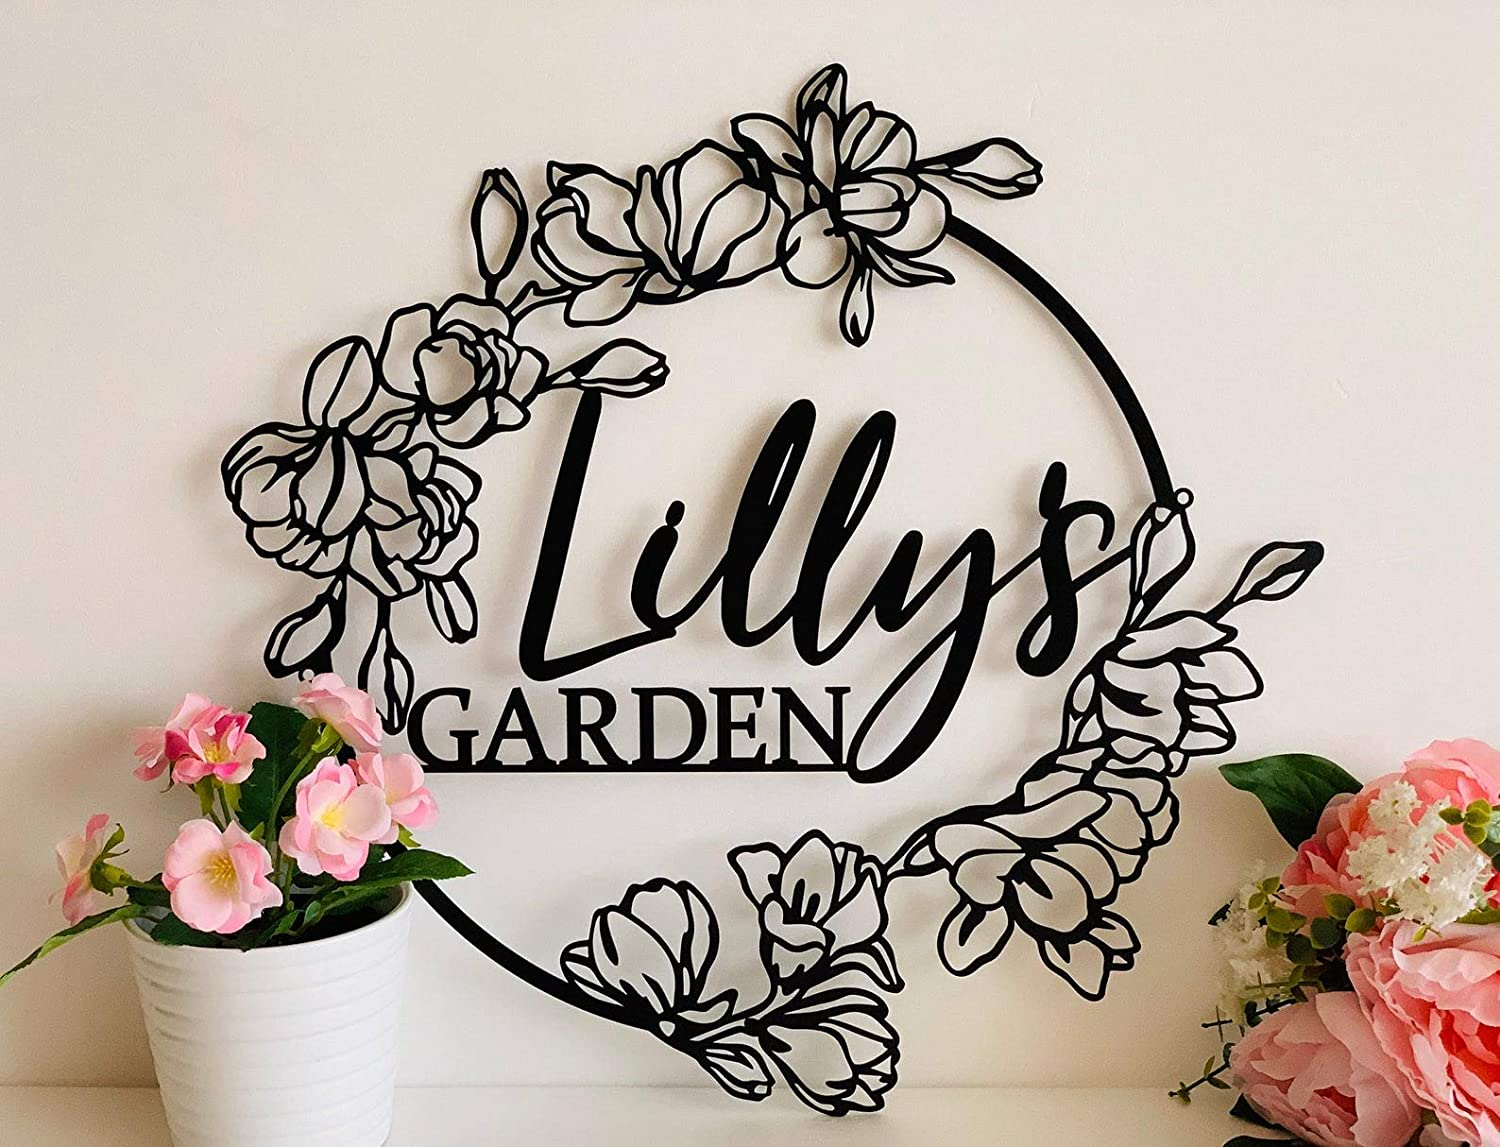 Personalized Flower Garden Name Sign, Custom Metal Wall Art, Gift for Gardener, Decorative Hanging Outdoor Decor, Flower Sign Plaque, Mom's Garden, Grandma's Garden, Metal Plate, Handmade Decoration